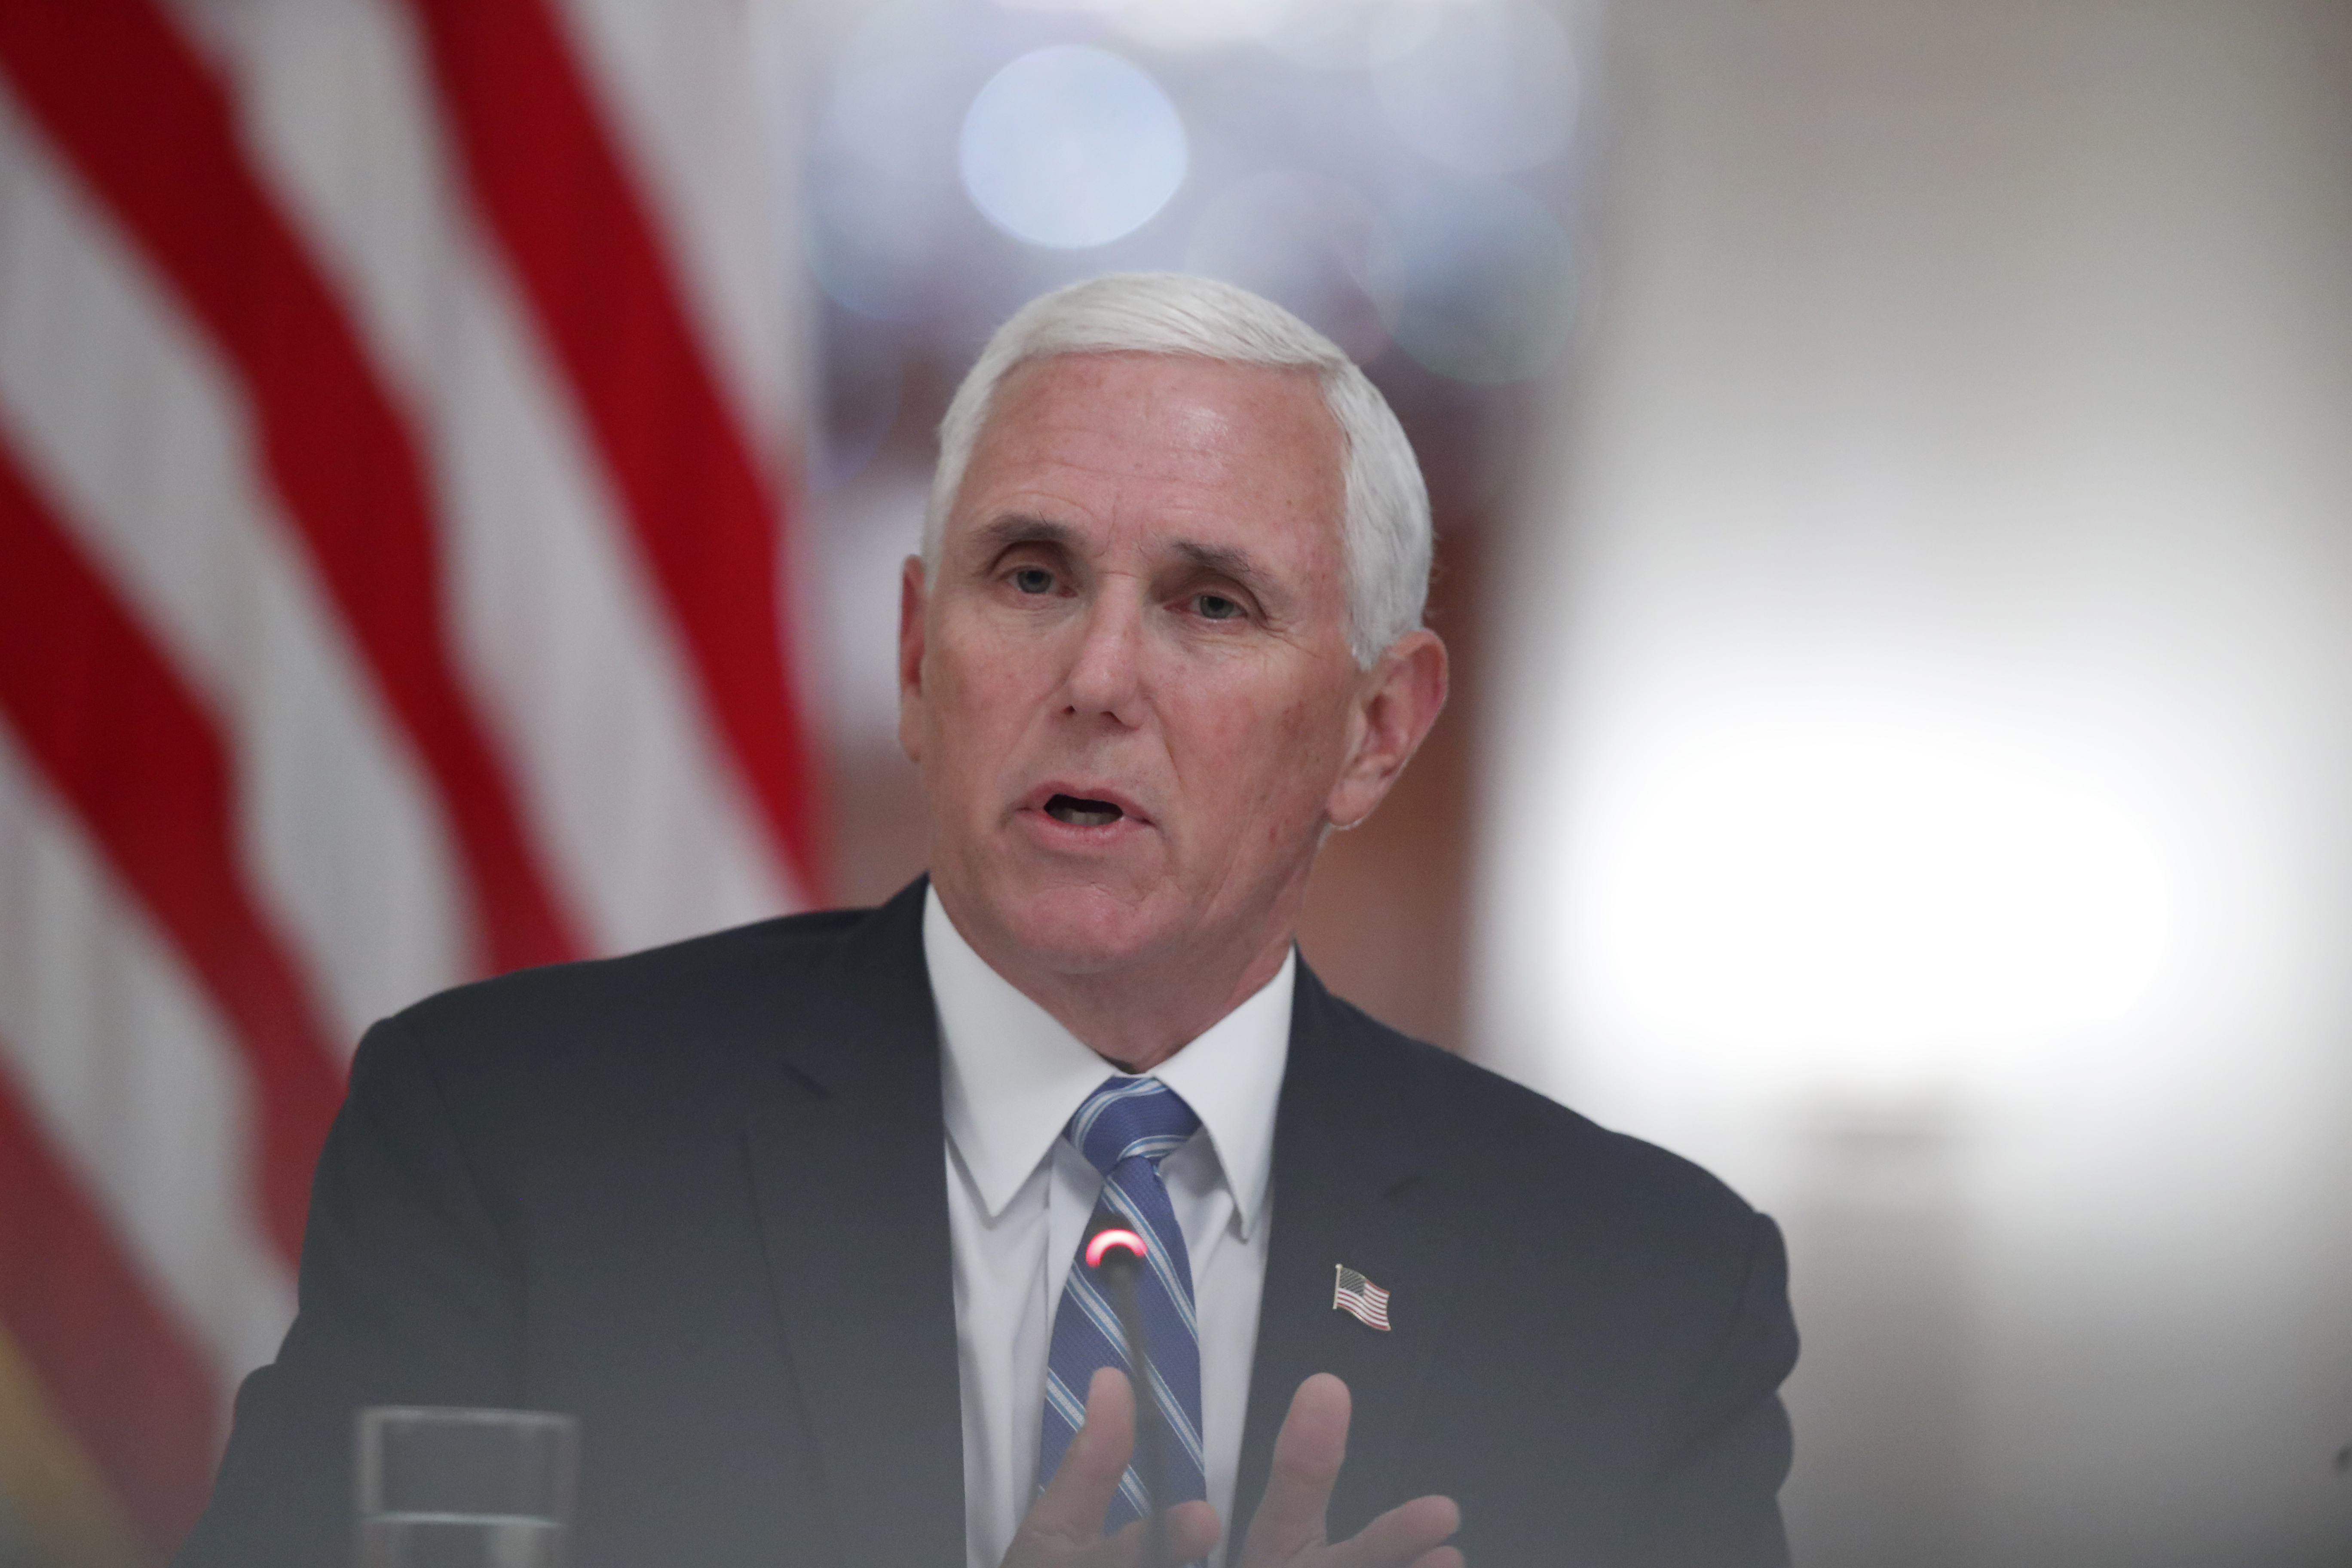 Mike Pence Says CDC Will Issue New Guidance on Reopening Schools After Trump Criticizes Agency for 'Impractical' Recommendations